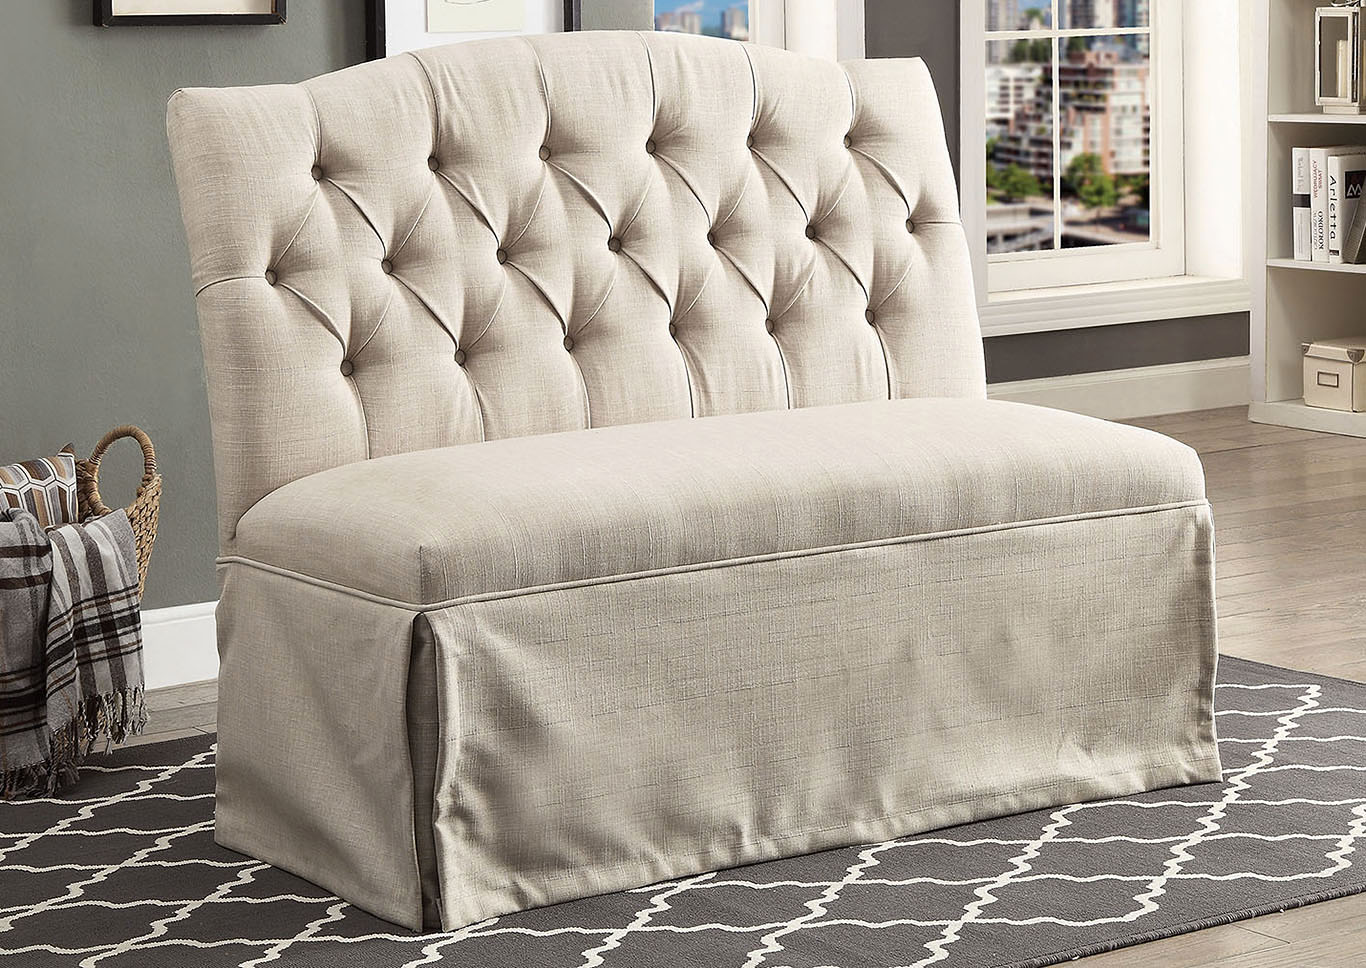 lucite grey bench velvet acrylic tv tufted loveseat legs nailhead